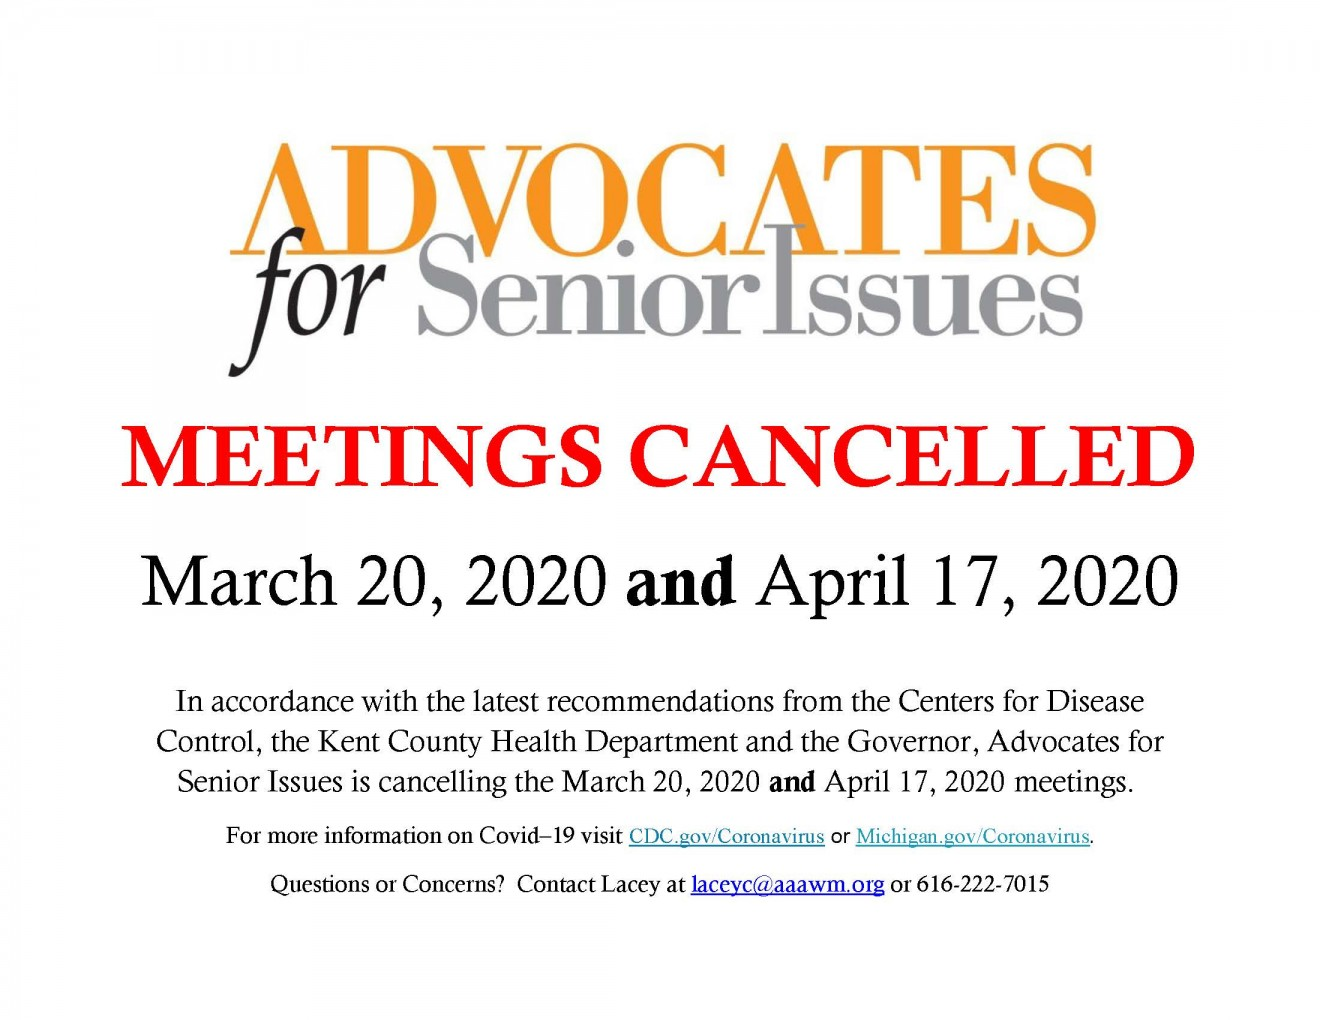 meeting-cancelled-march-and-april-2020.jpg image